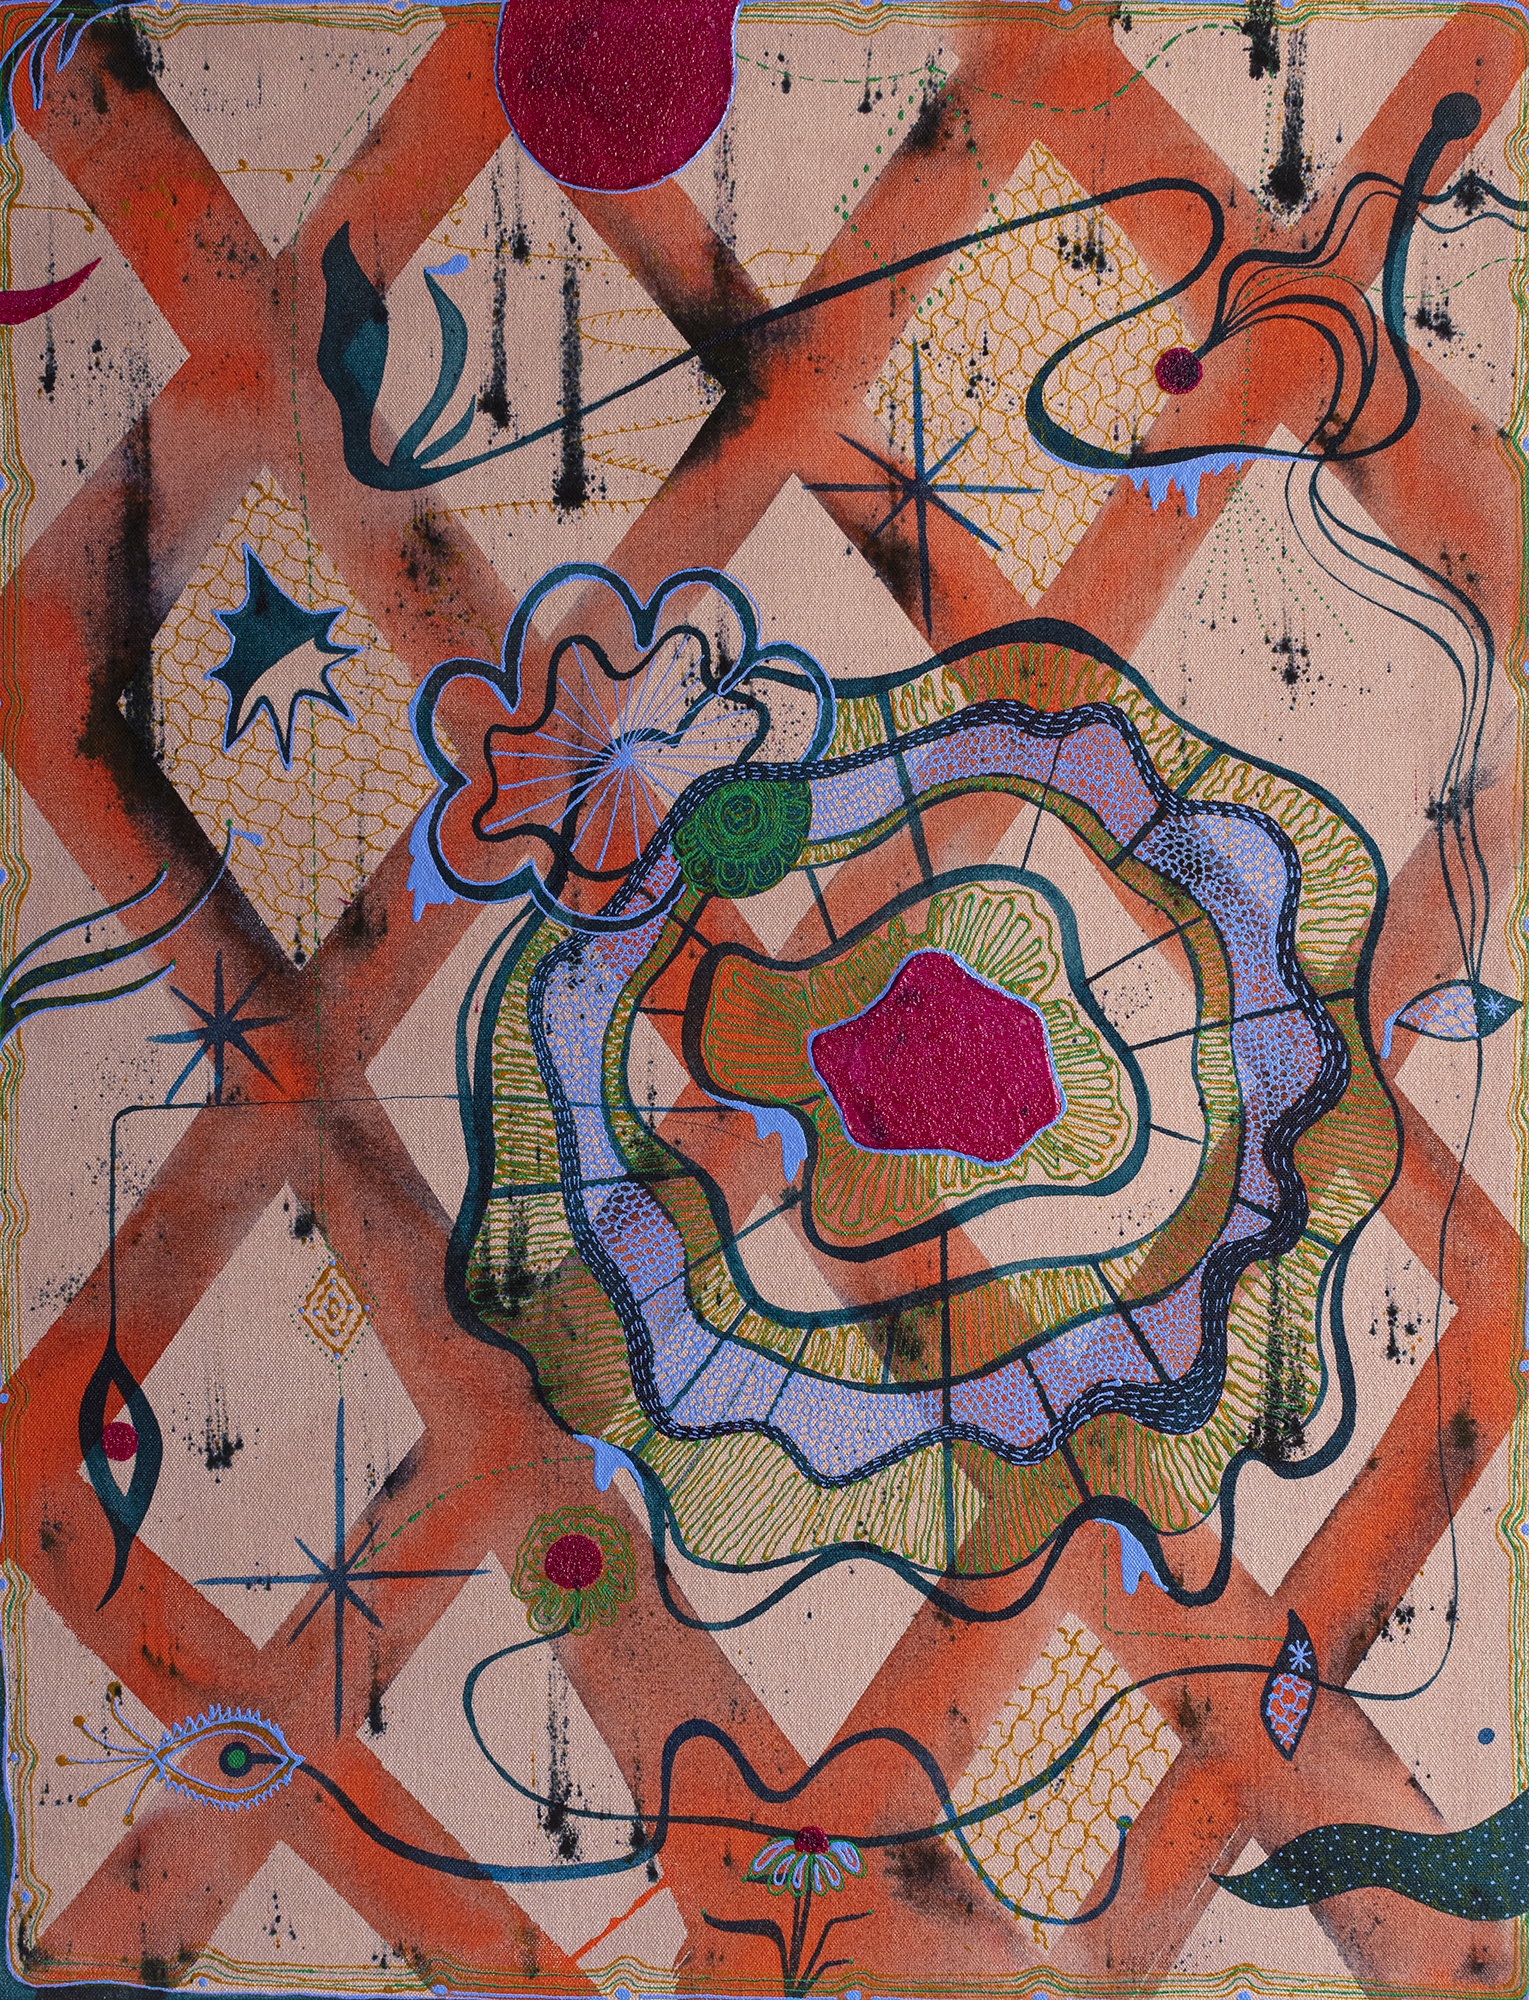 A Web that Warns  2019 Acrylic on canvas 20 x 26 inches  [Image description: Thick orange lines crisscross to create a diamond pattern on a tan colored background. On top of this pattern and slightly off-center, a purple, black, green, and gold web with a red center is painted. Other decorative symbols including star shapes, flowers, and eyes dance across the surface of the canvas.]